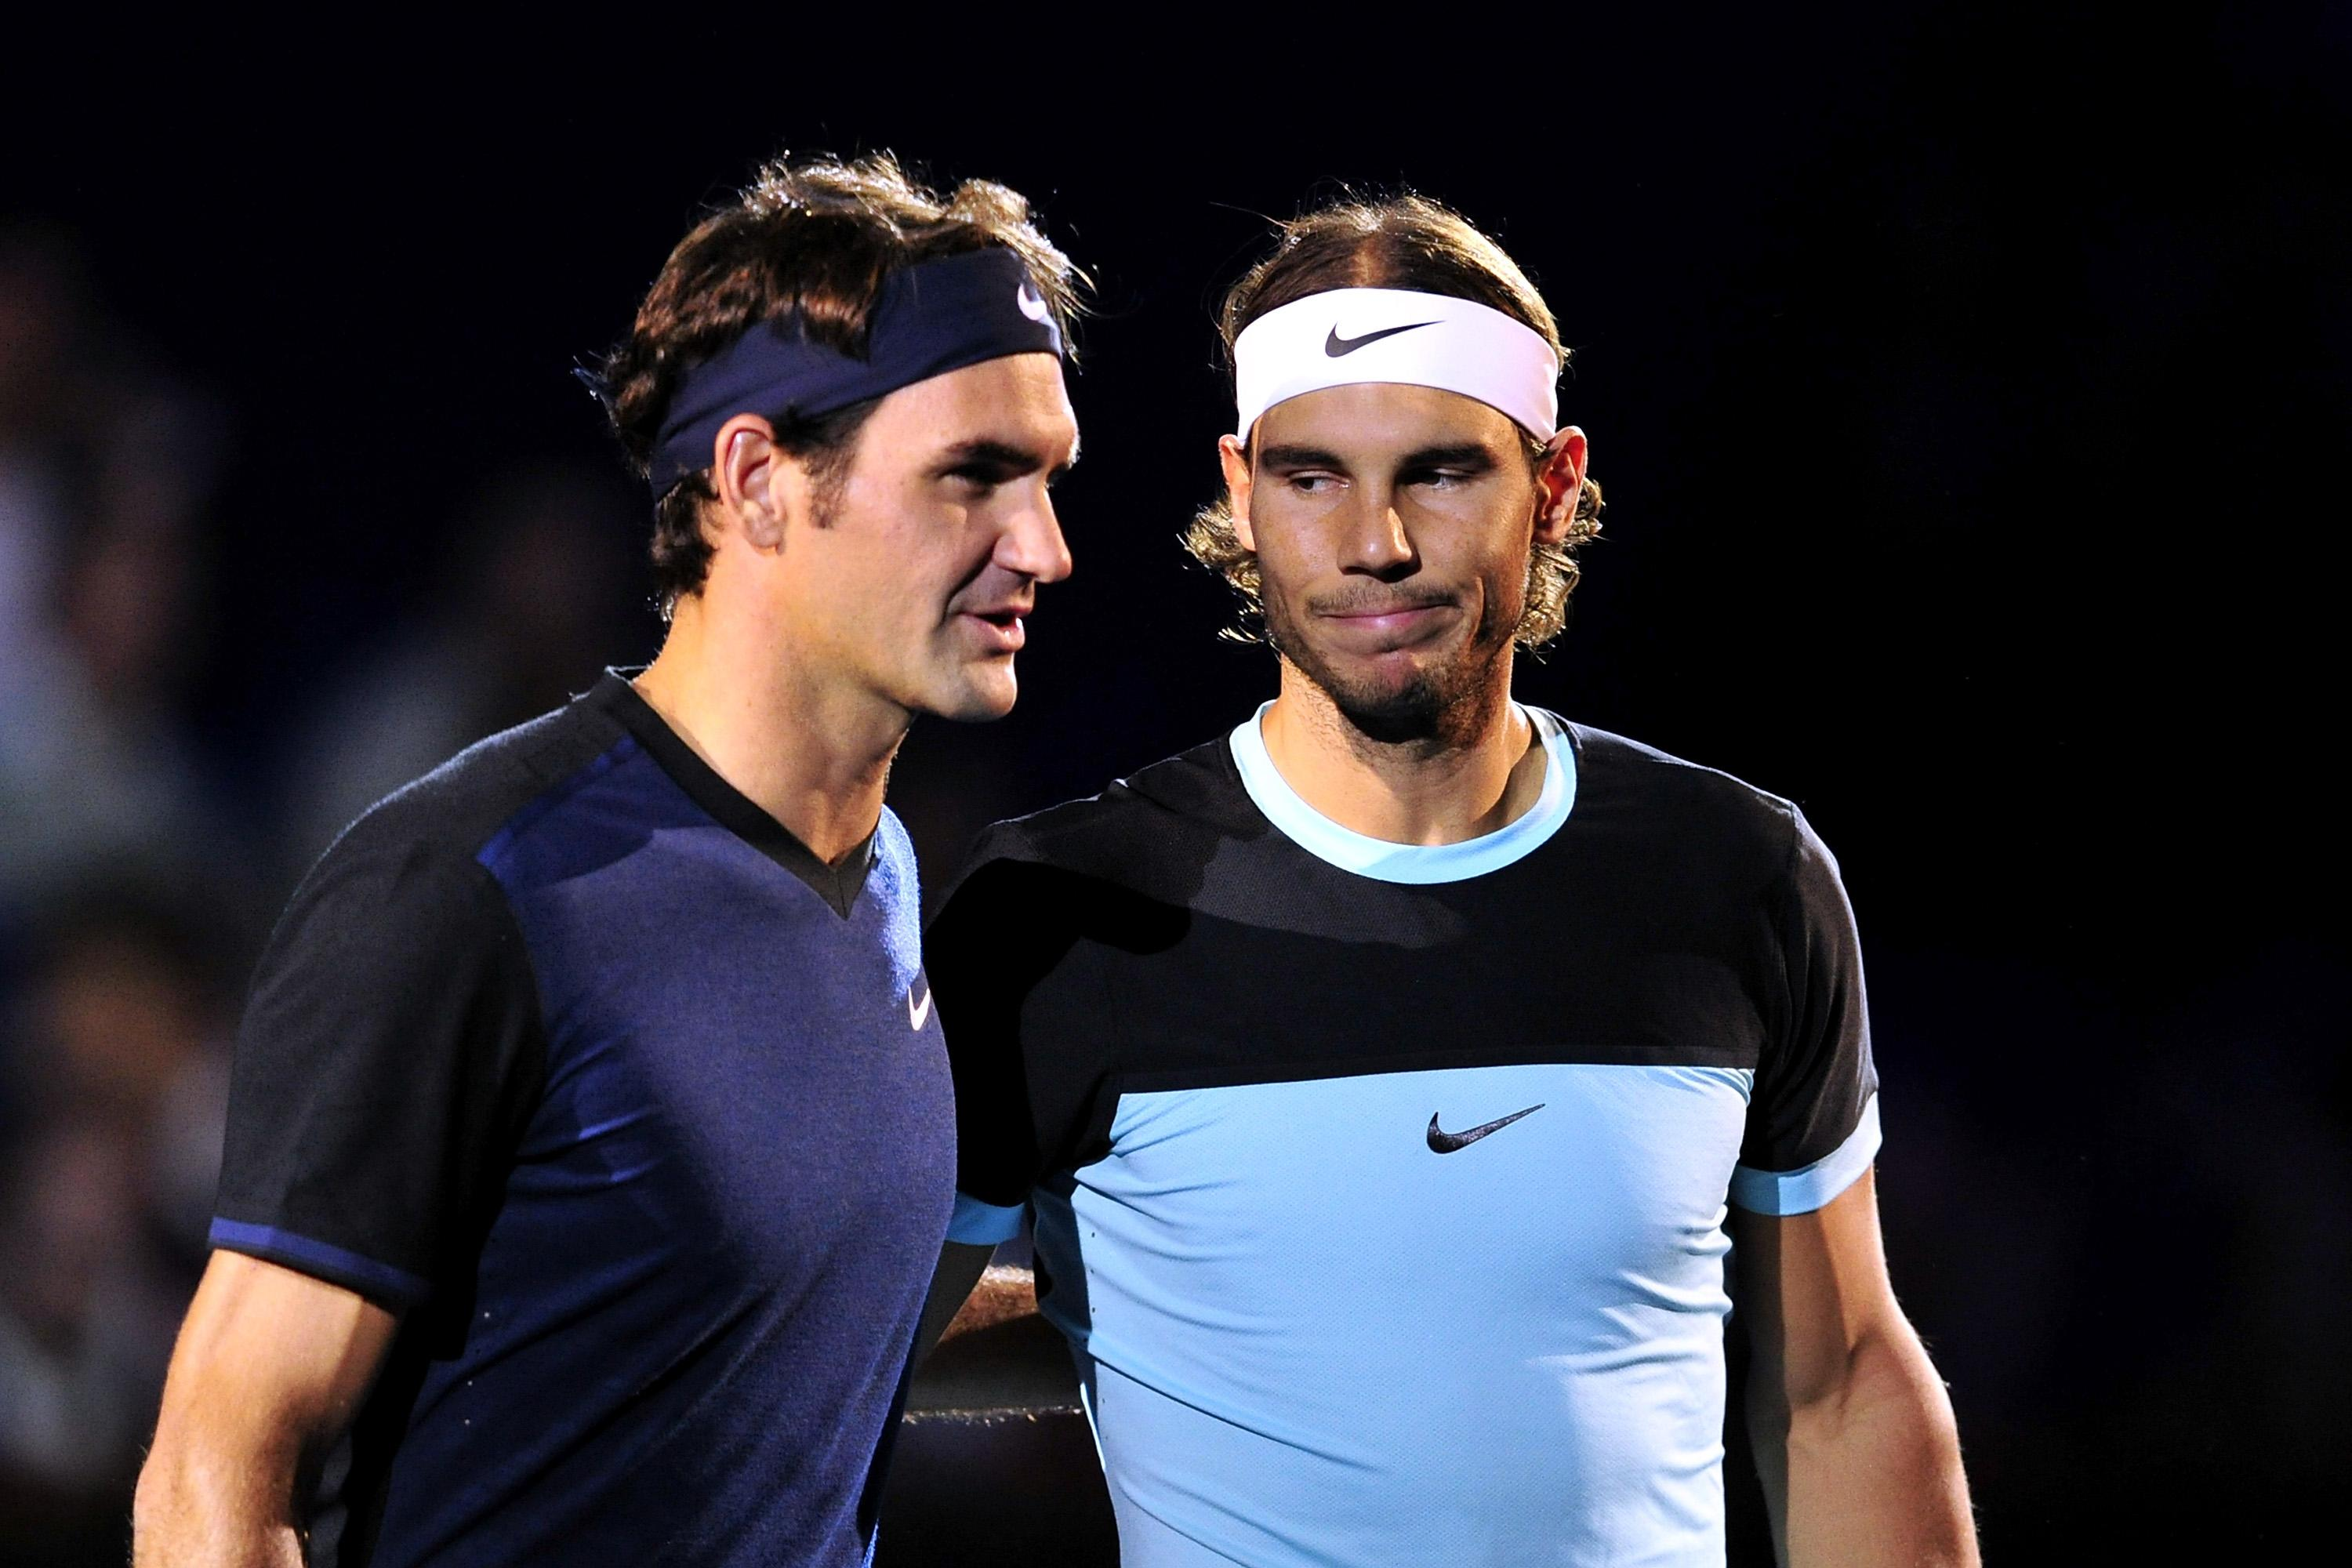 Why Federer would welcome a showdown with Nadal